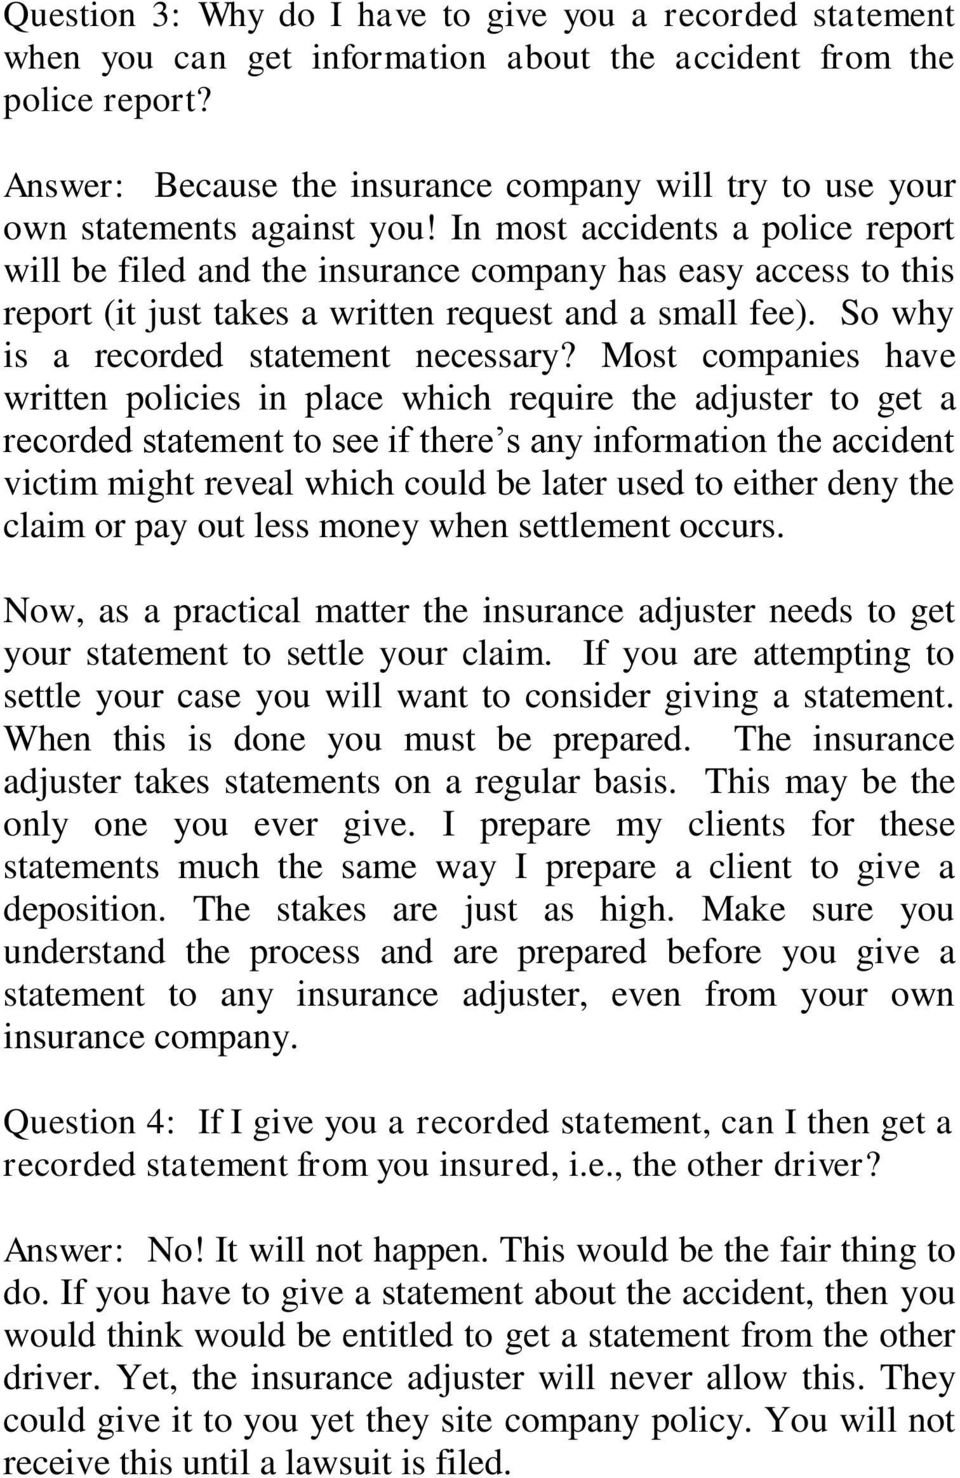 In most accidents a police report will be filed and the insurance company has easy access to this report (it just takes a written request and a small fee). So why is a recorded statement necessary?